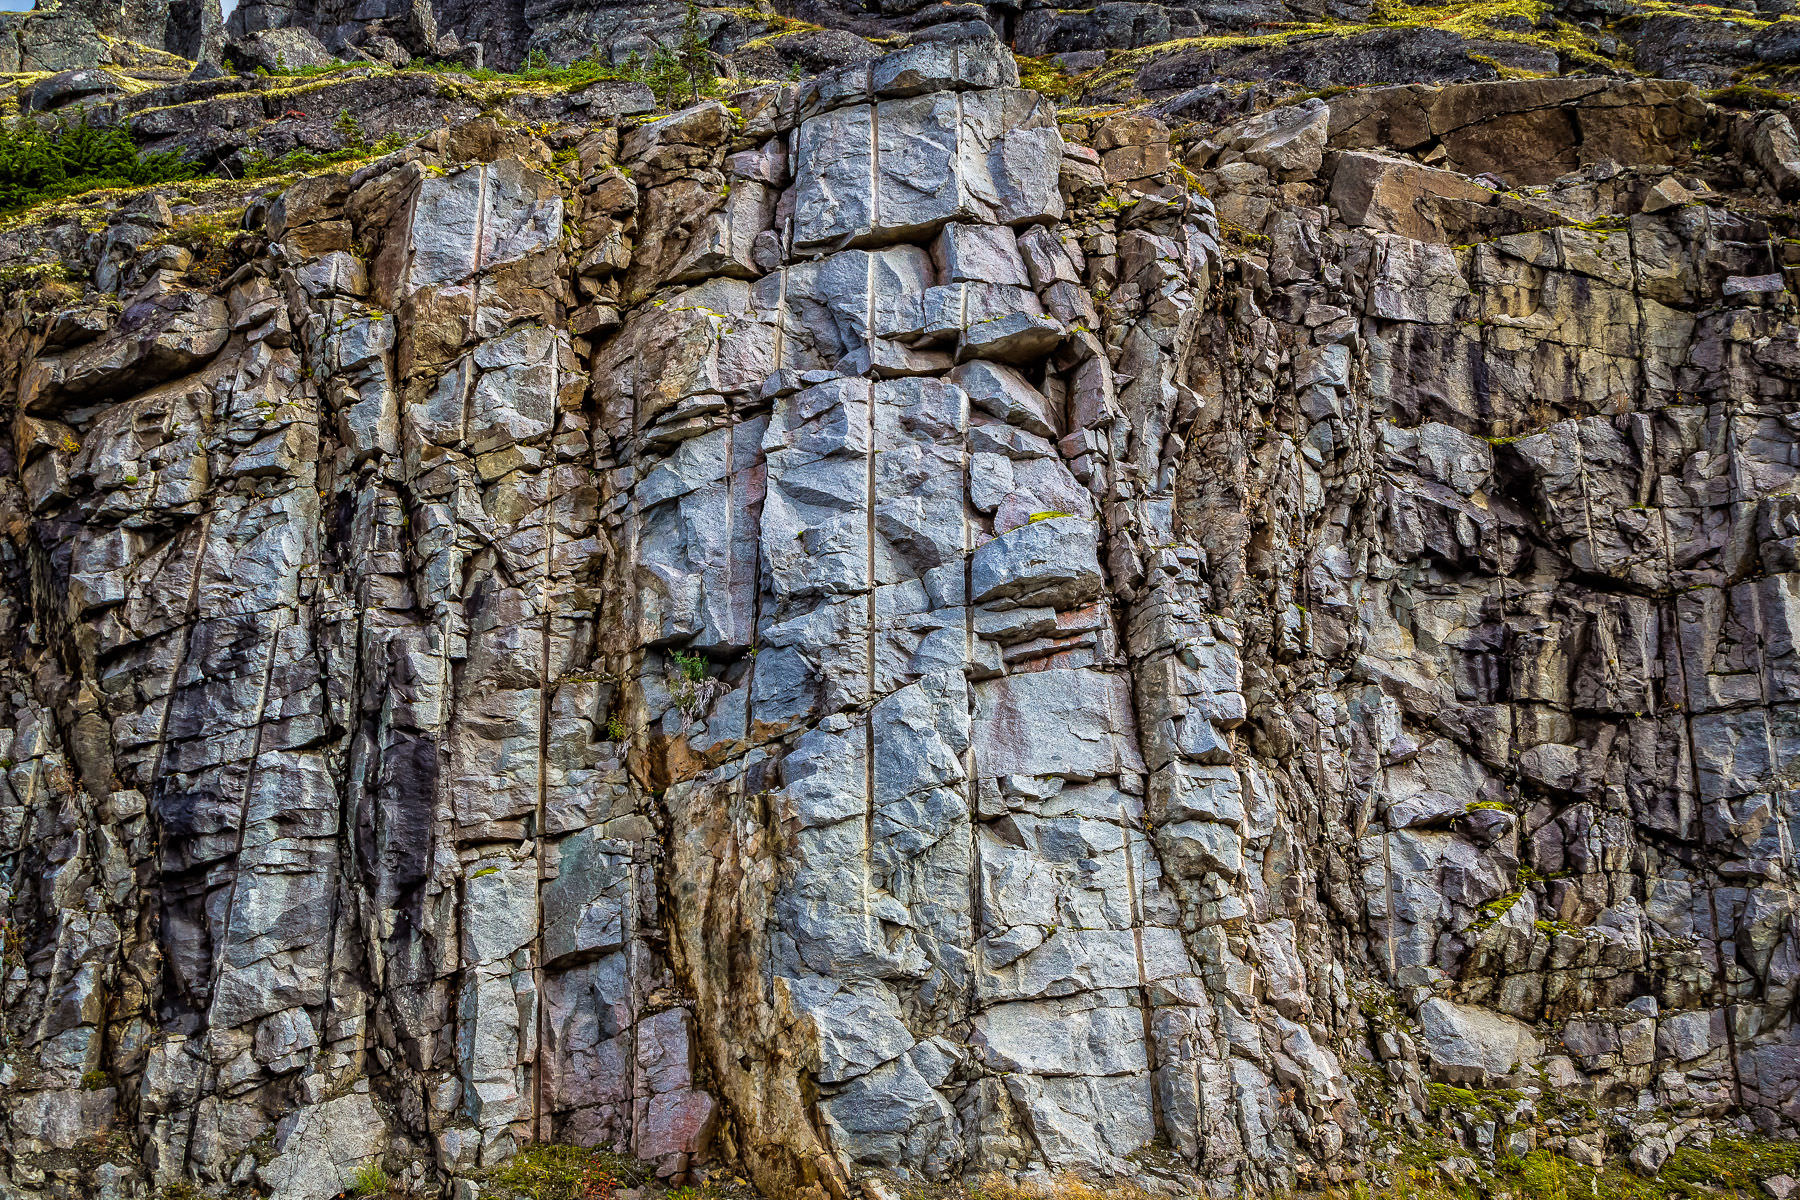 Cracked rocks showing vertical boreholes where explosives were placed to carve the Klondike Highway out of the rugged landscape of Alaska near the border with British Columbia, Canada.